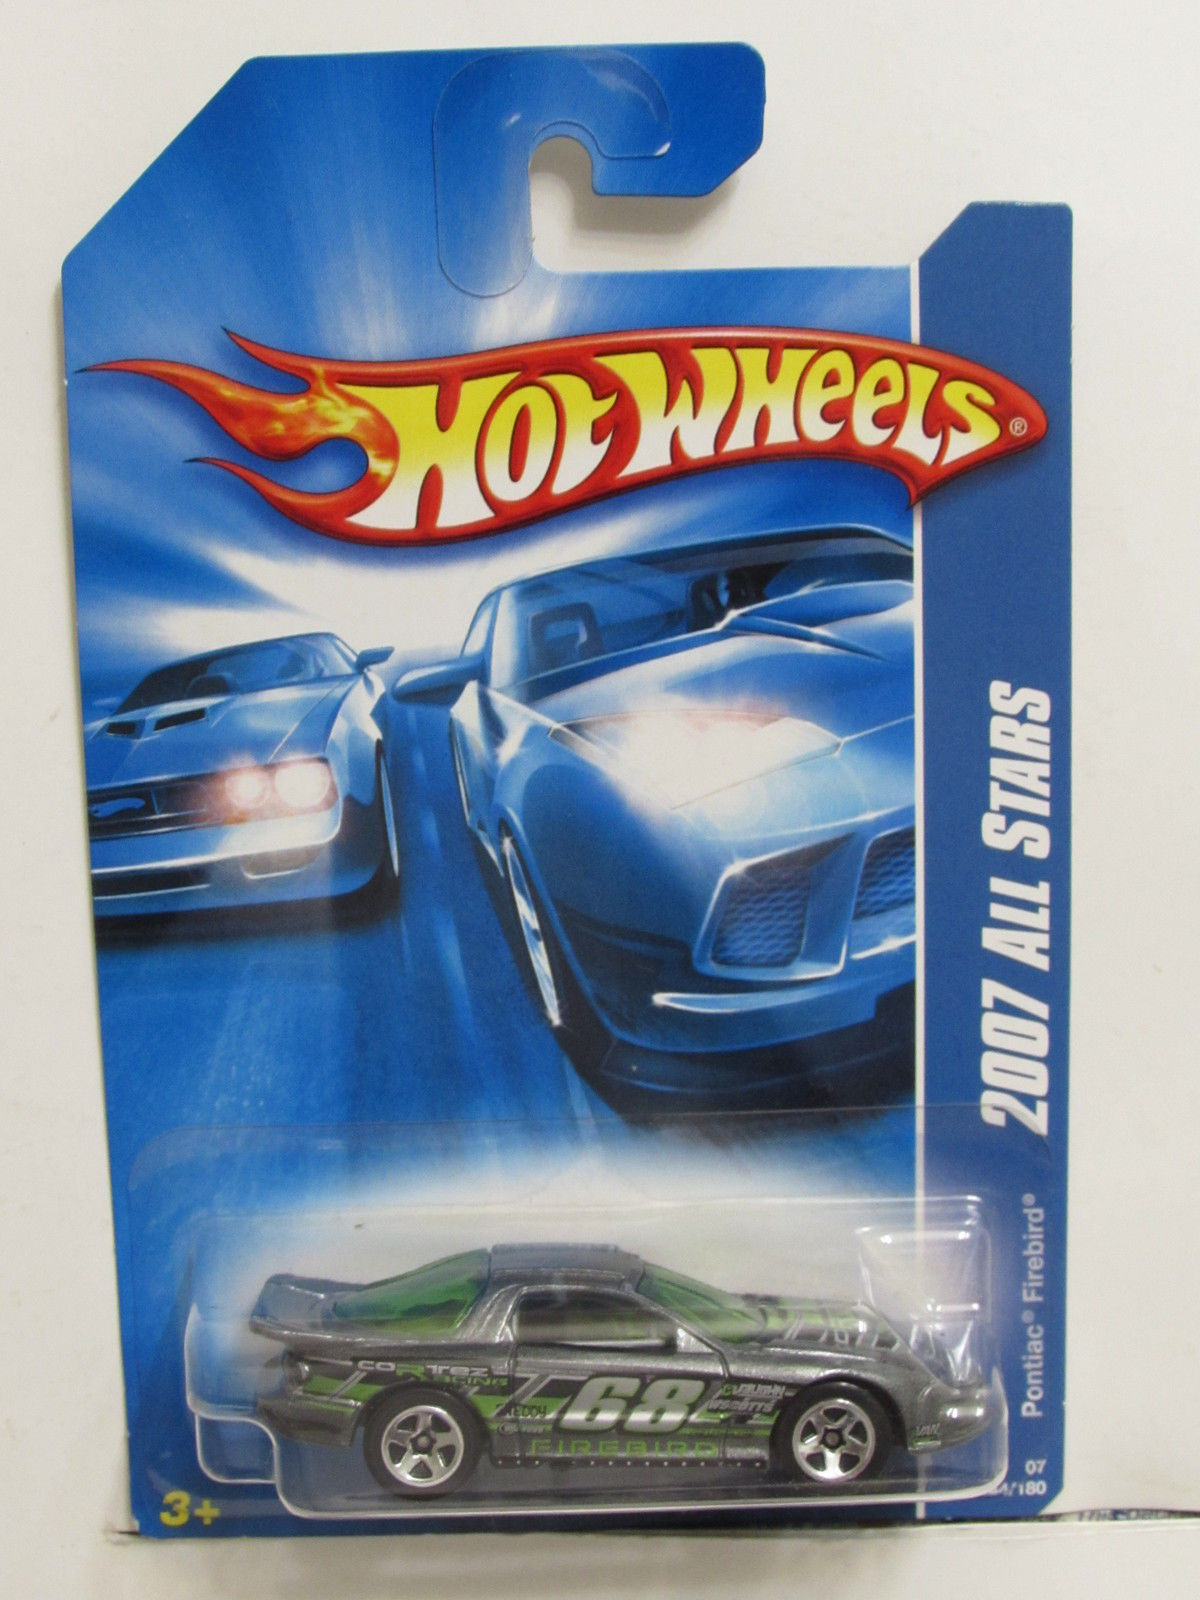 HOT WHEELS 2007 ALL STARS PONTIAC FIREBIRD